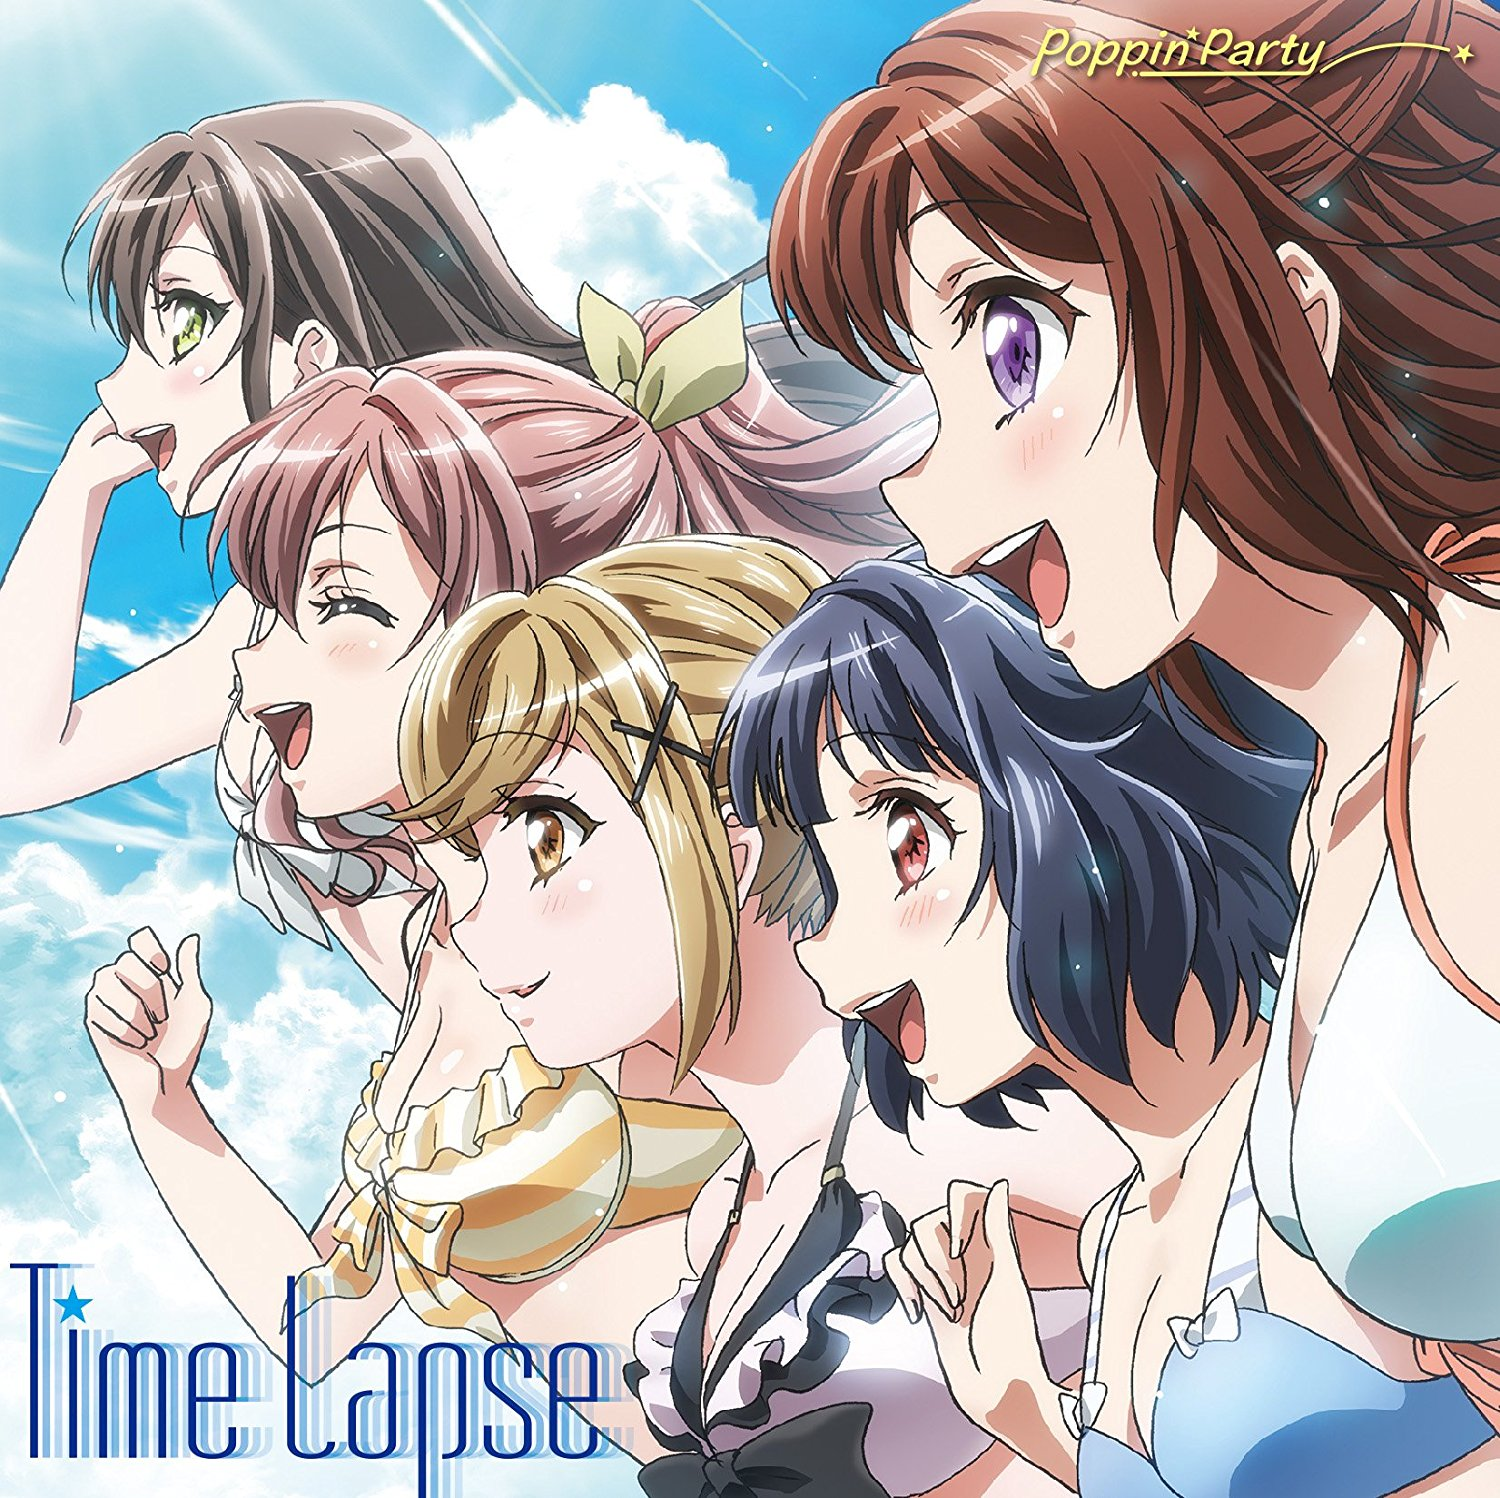 BanG Dream!: Poppin'Party – Time Lapse